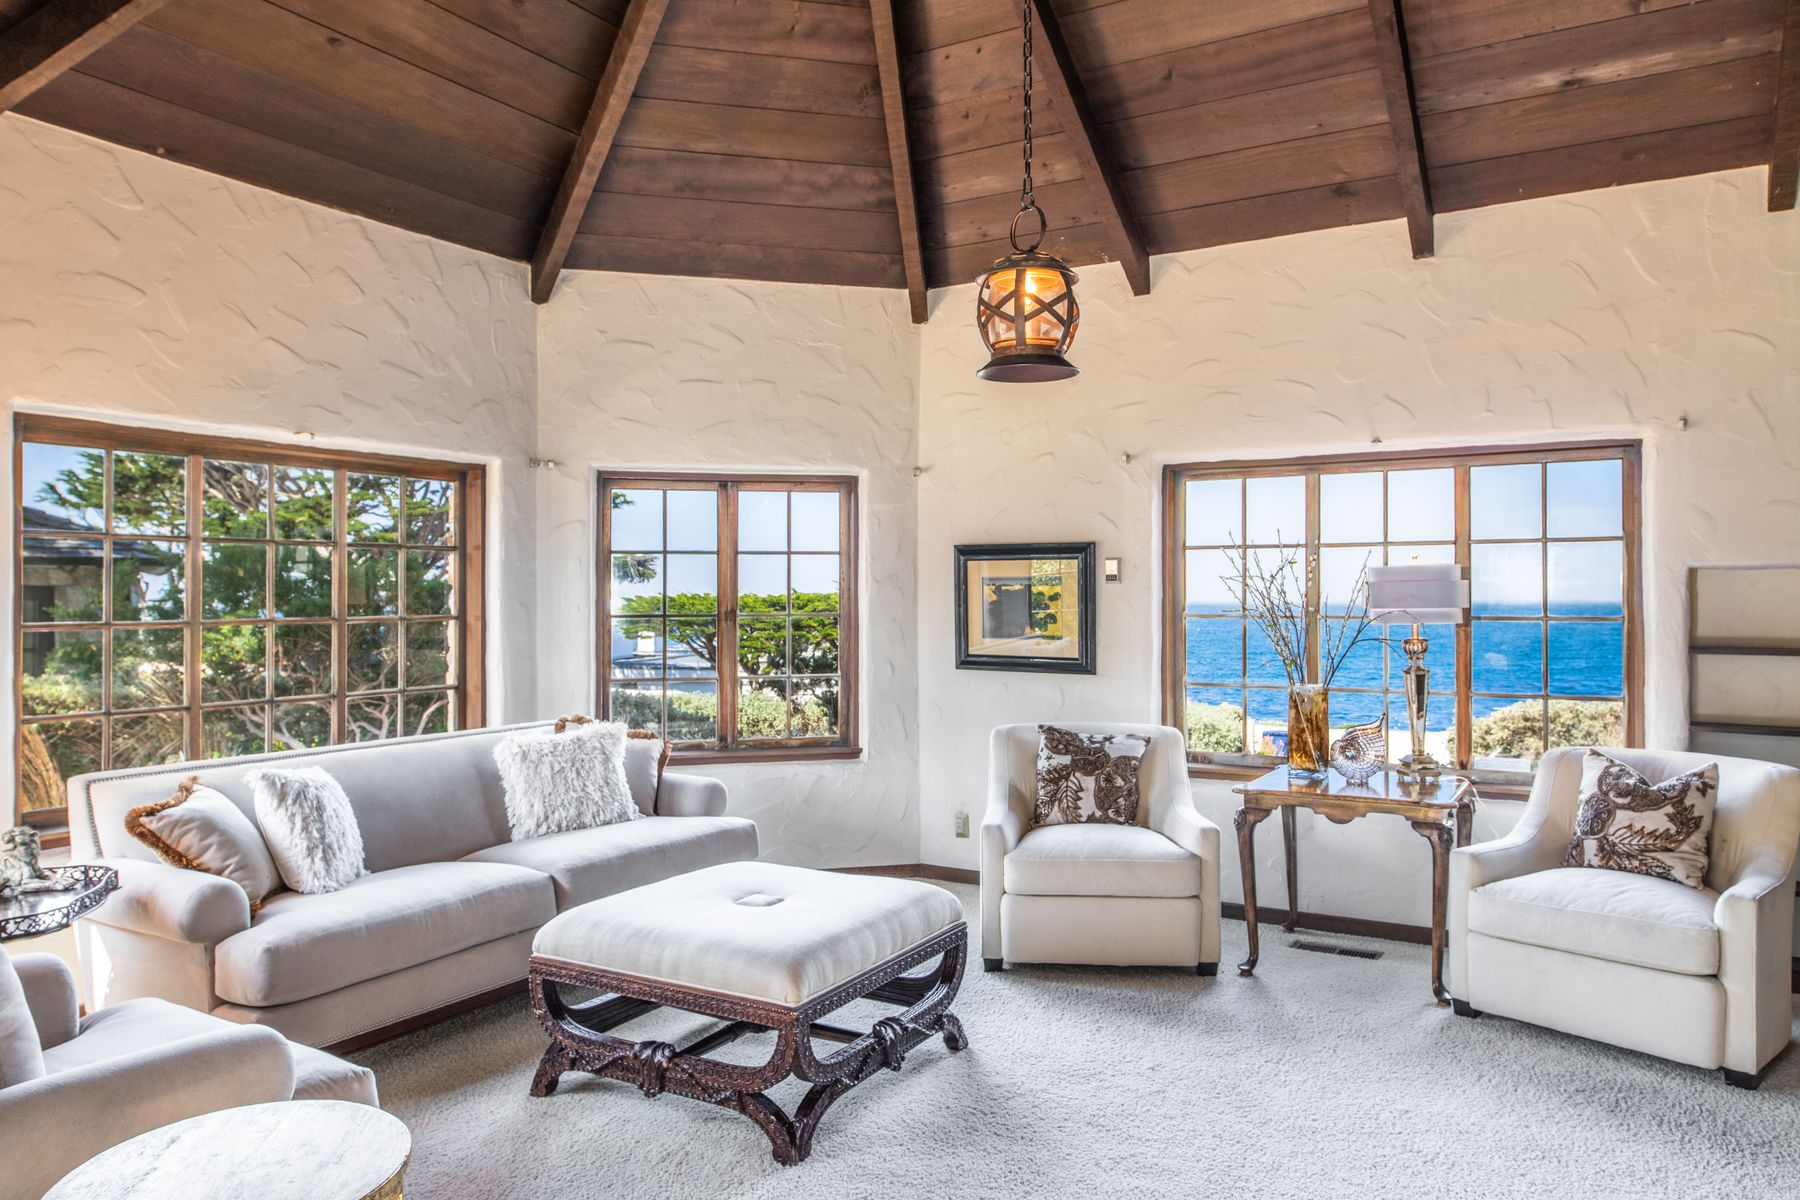 Single Family Homes for Sale at Potential on the Point 26317 Scenic Road (Lot #1) Carmel, California 93923 United States